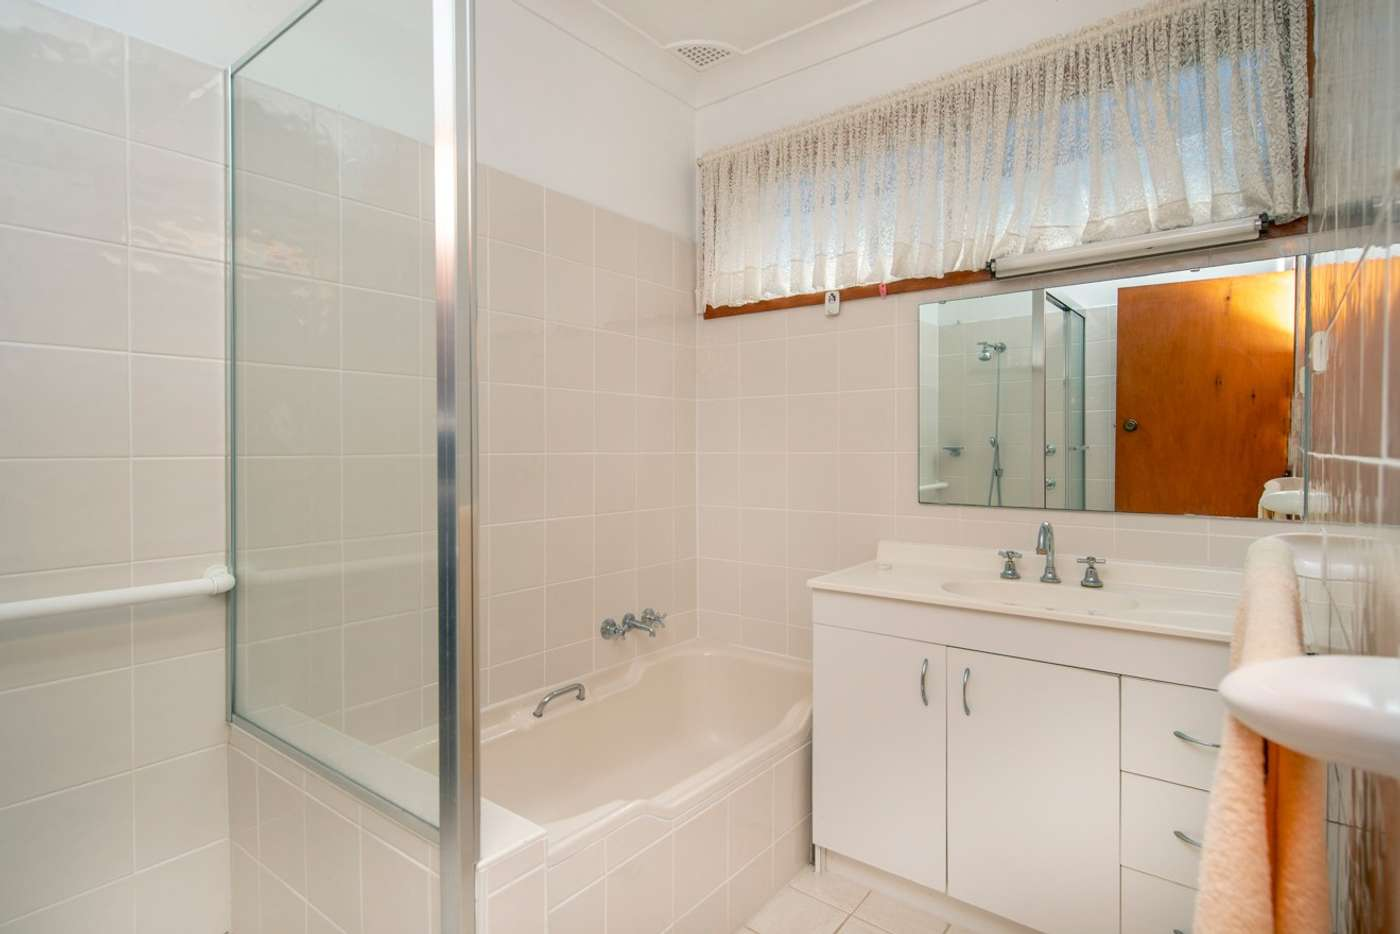 Fifth view of Homely house listing, 7 Penelope Place, Kotara NSW 2289